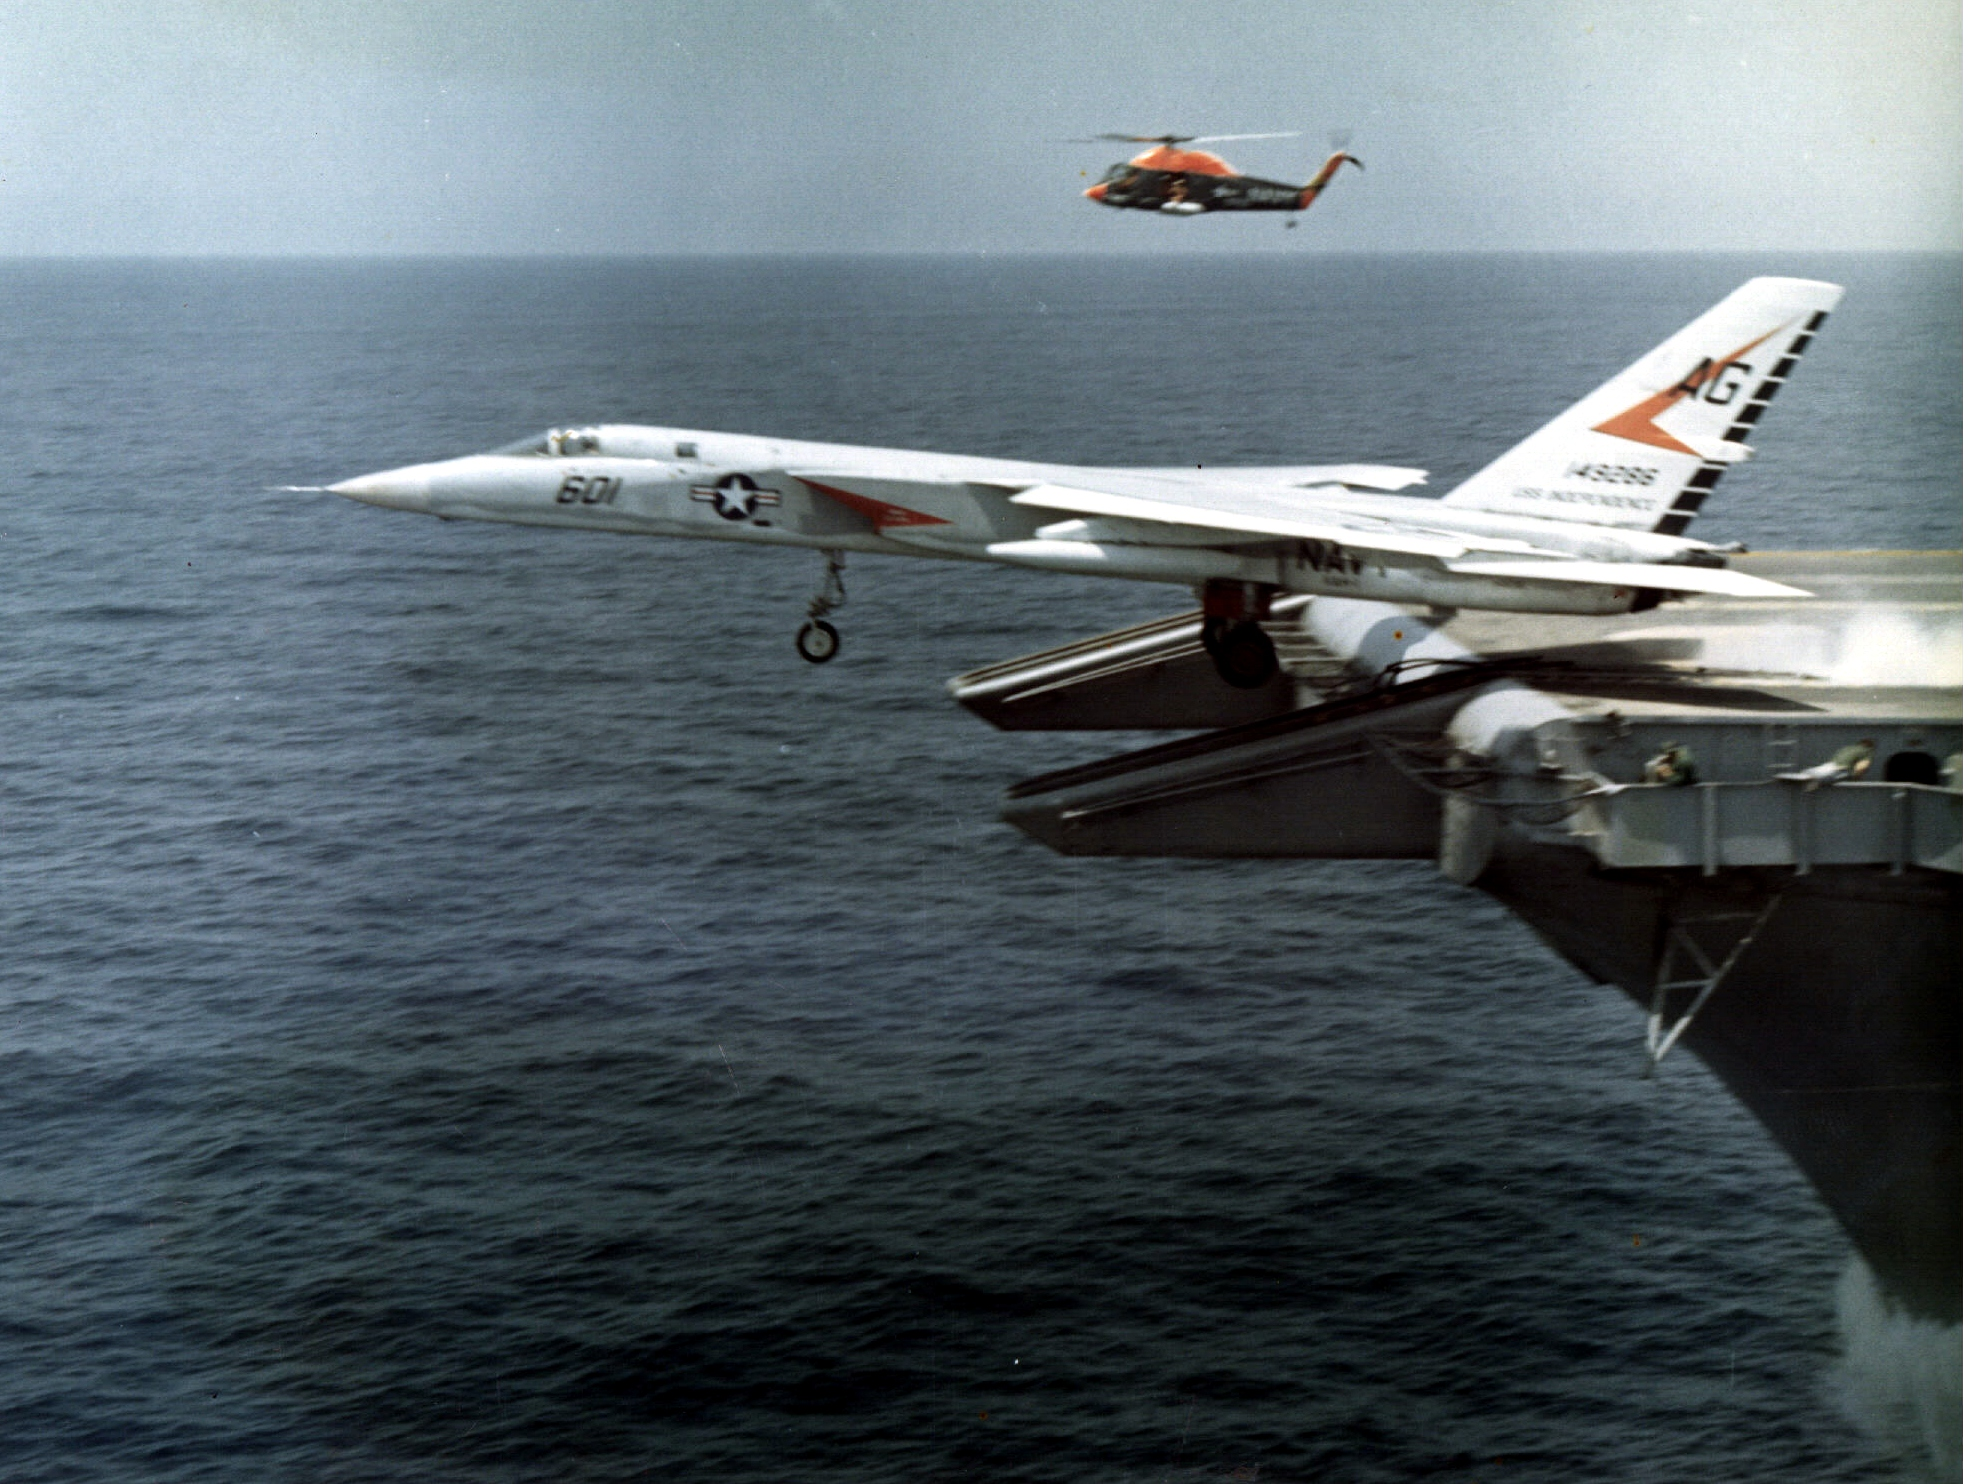 A-5A_Vigilante_of_VAH-1_being_launched_c